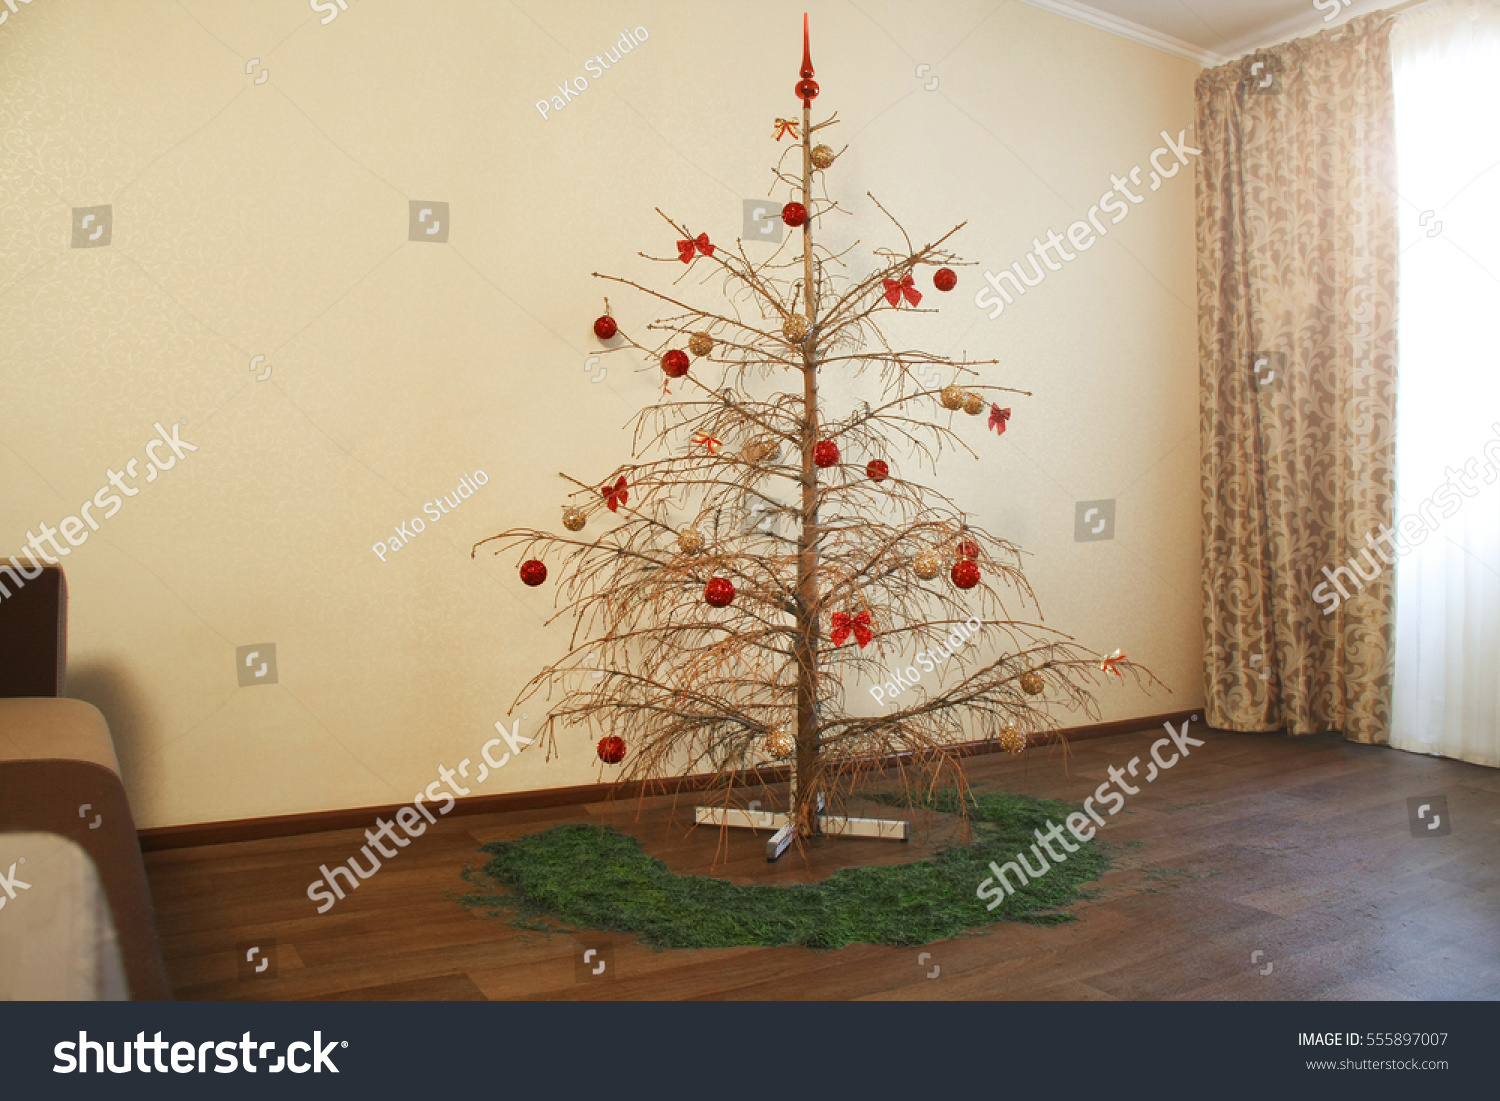 Dried Christmas Tree Stock Photo 555897007 - Shutterstock